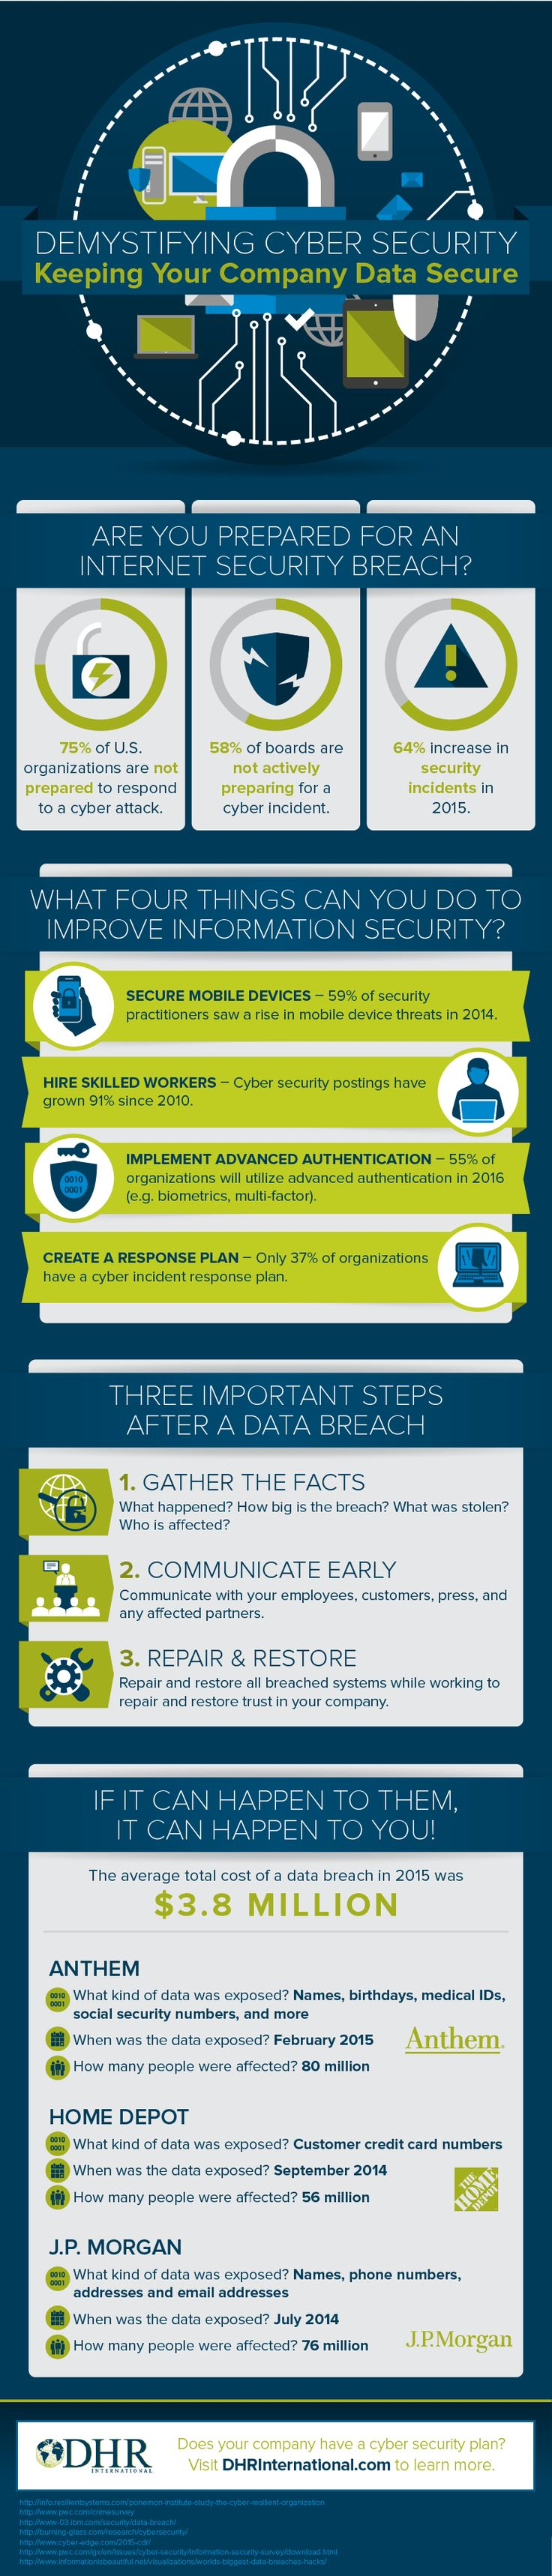 Cybersecurity Planning is Finally Demystified (Infographic)